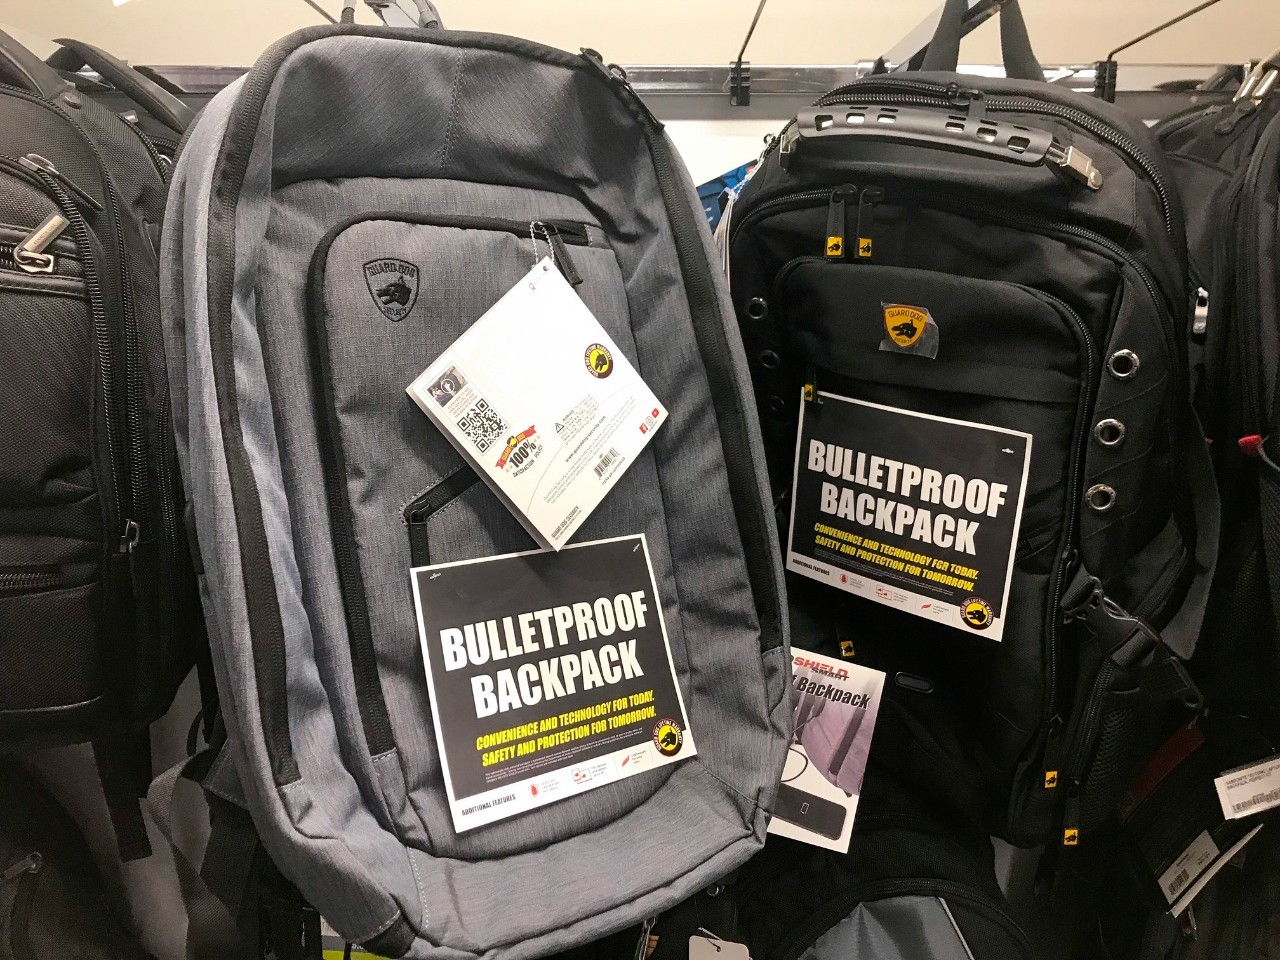 08f888915c8a Mass shootings give rise to bullet-resistant backpacks   CP24.com